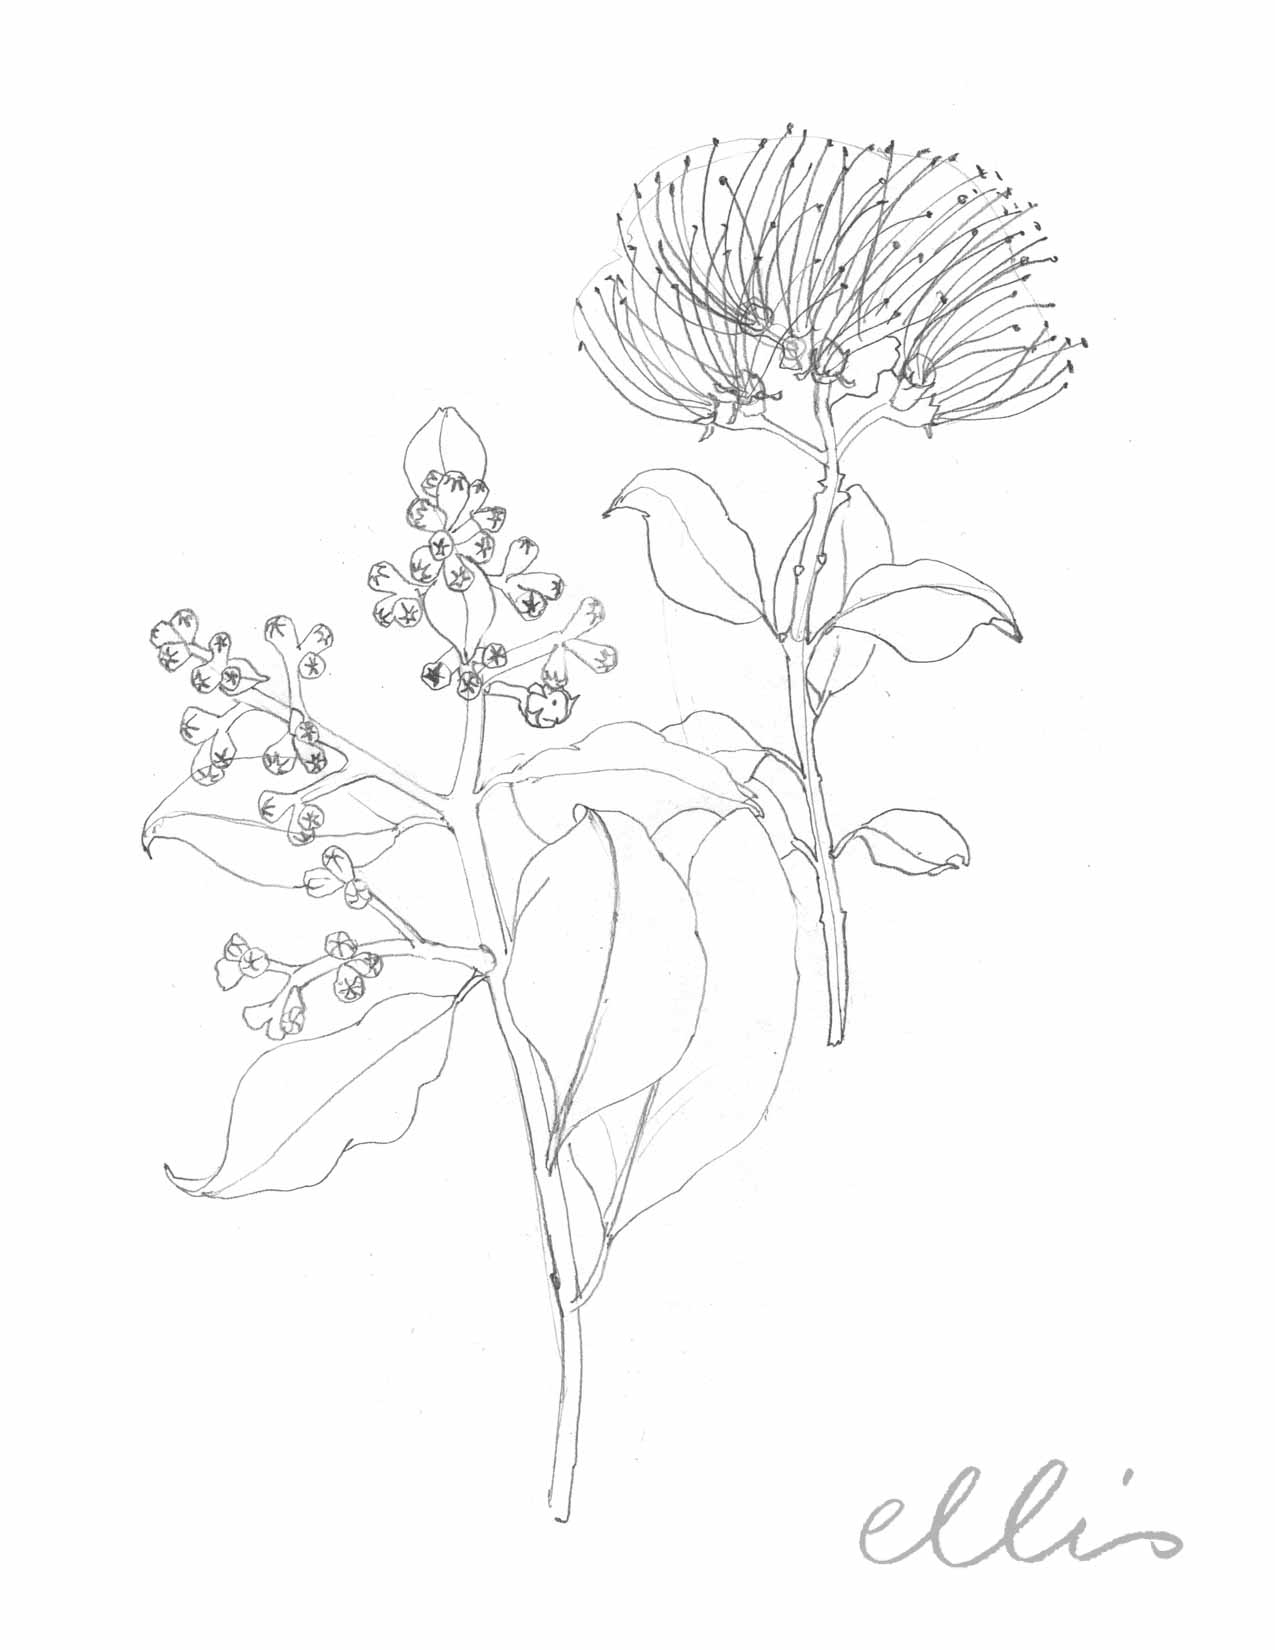 Erin Ellis_100 days project botanical drawings_2013-85.jpg